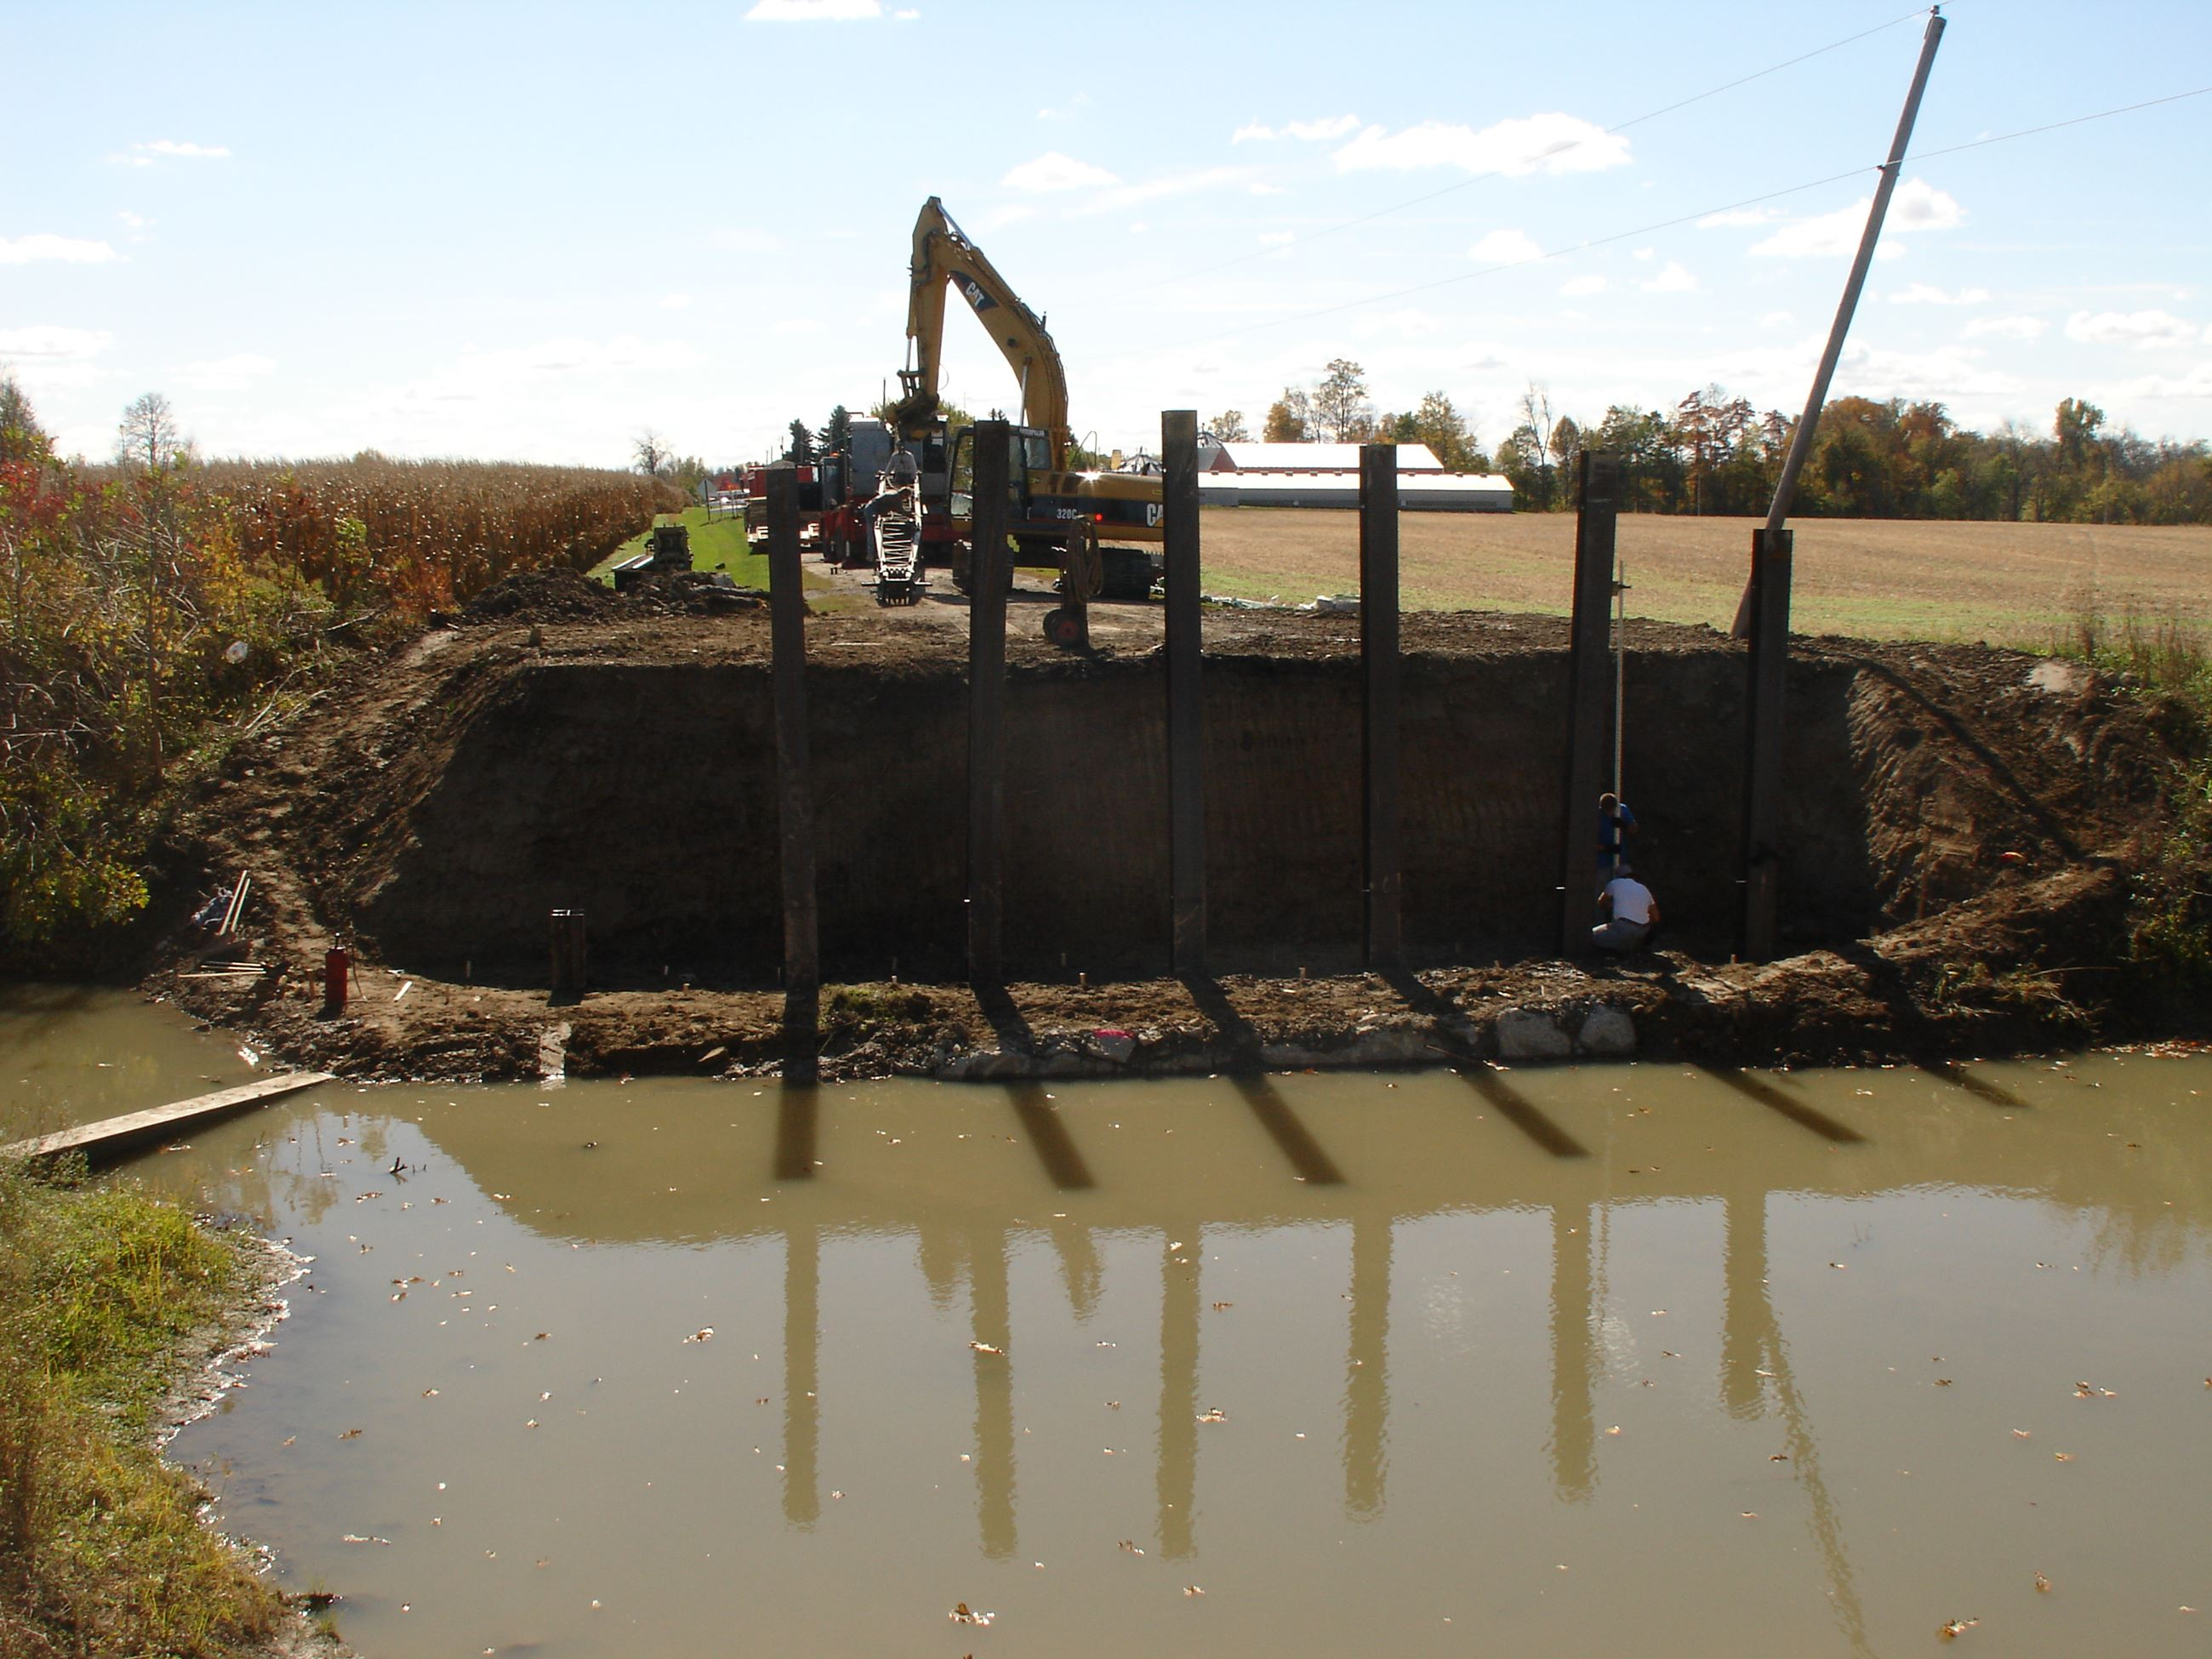 Building a Ditch Wall